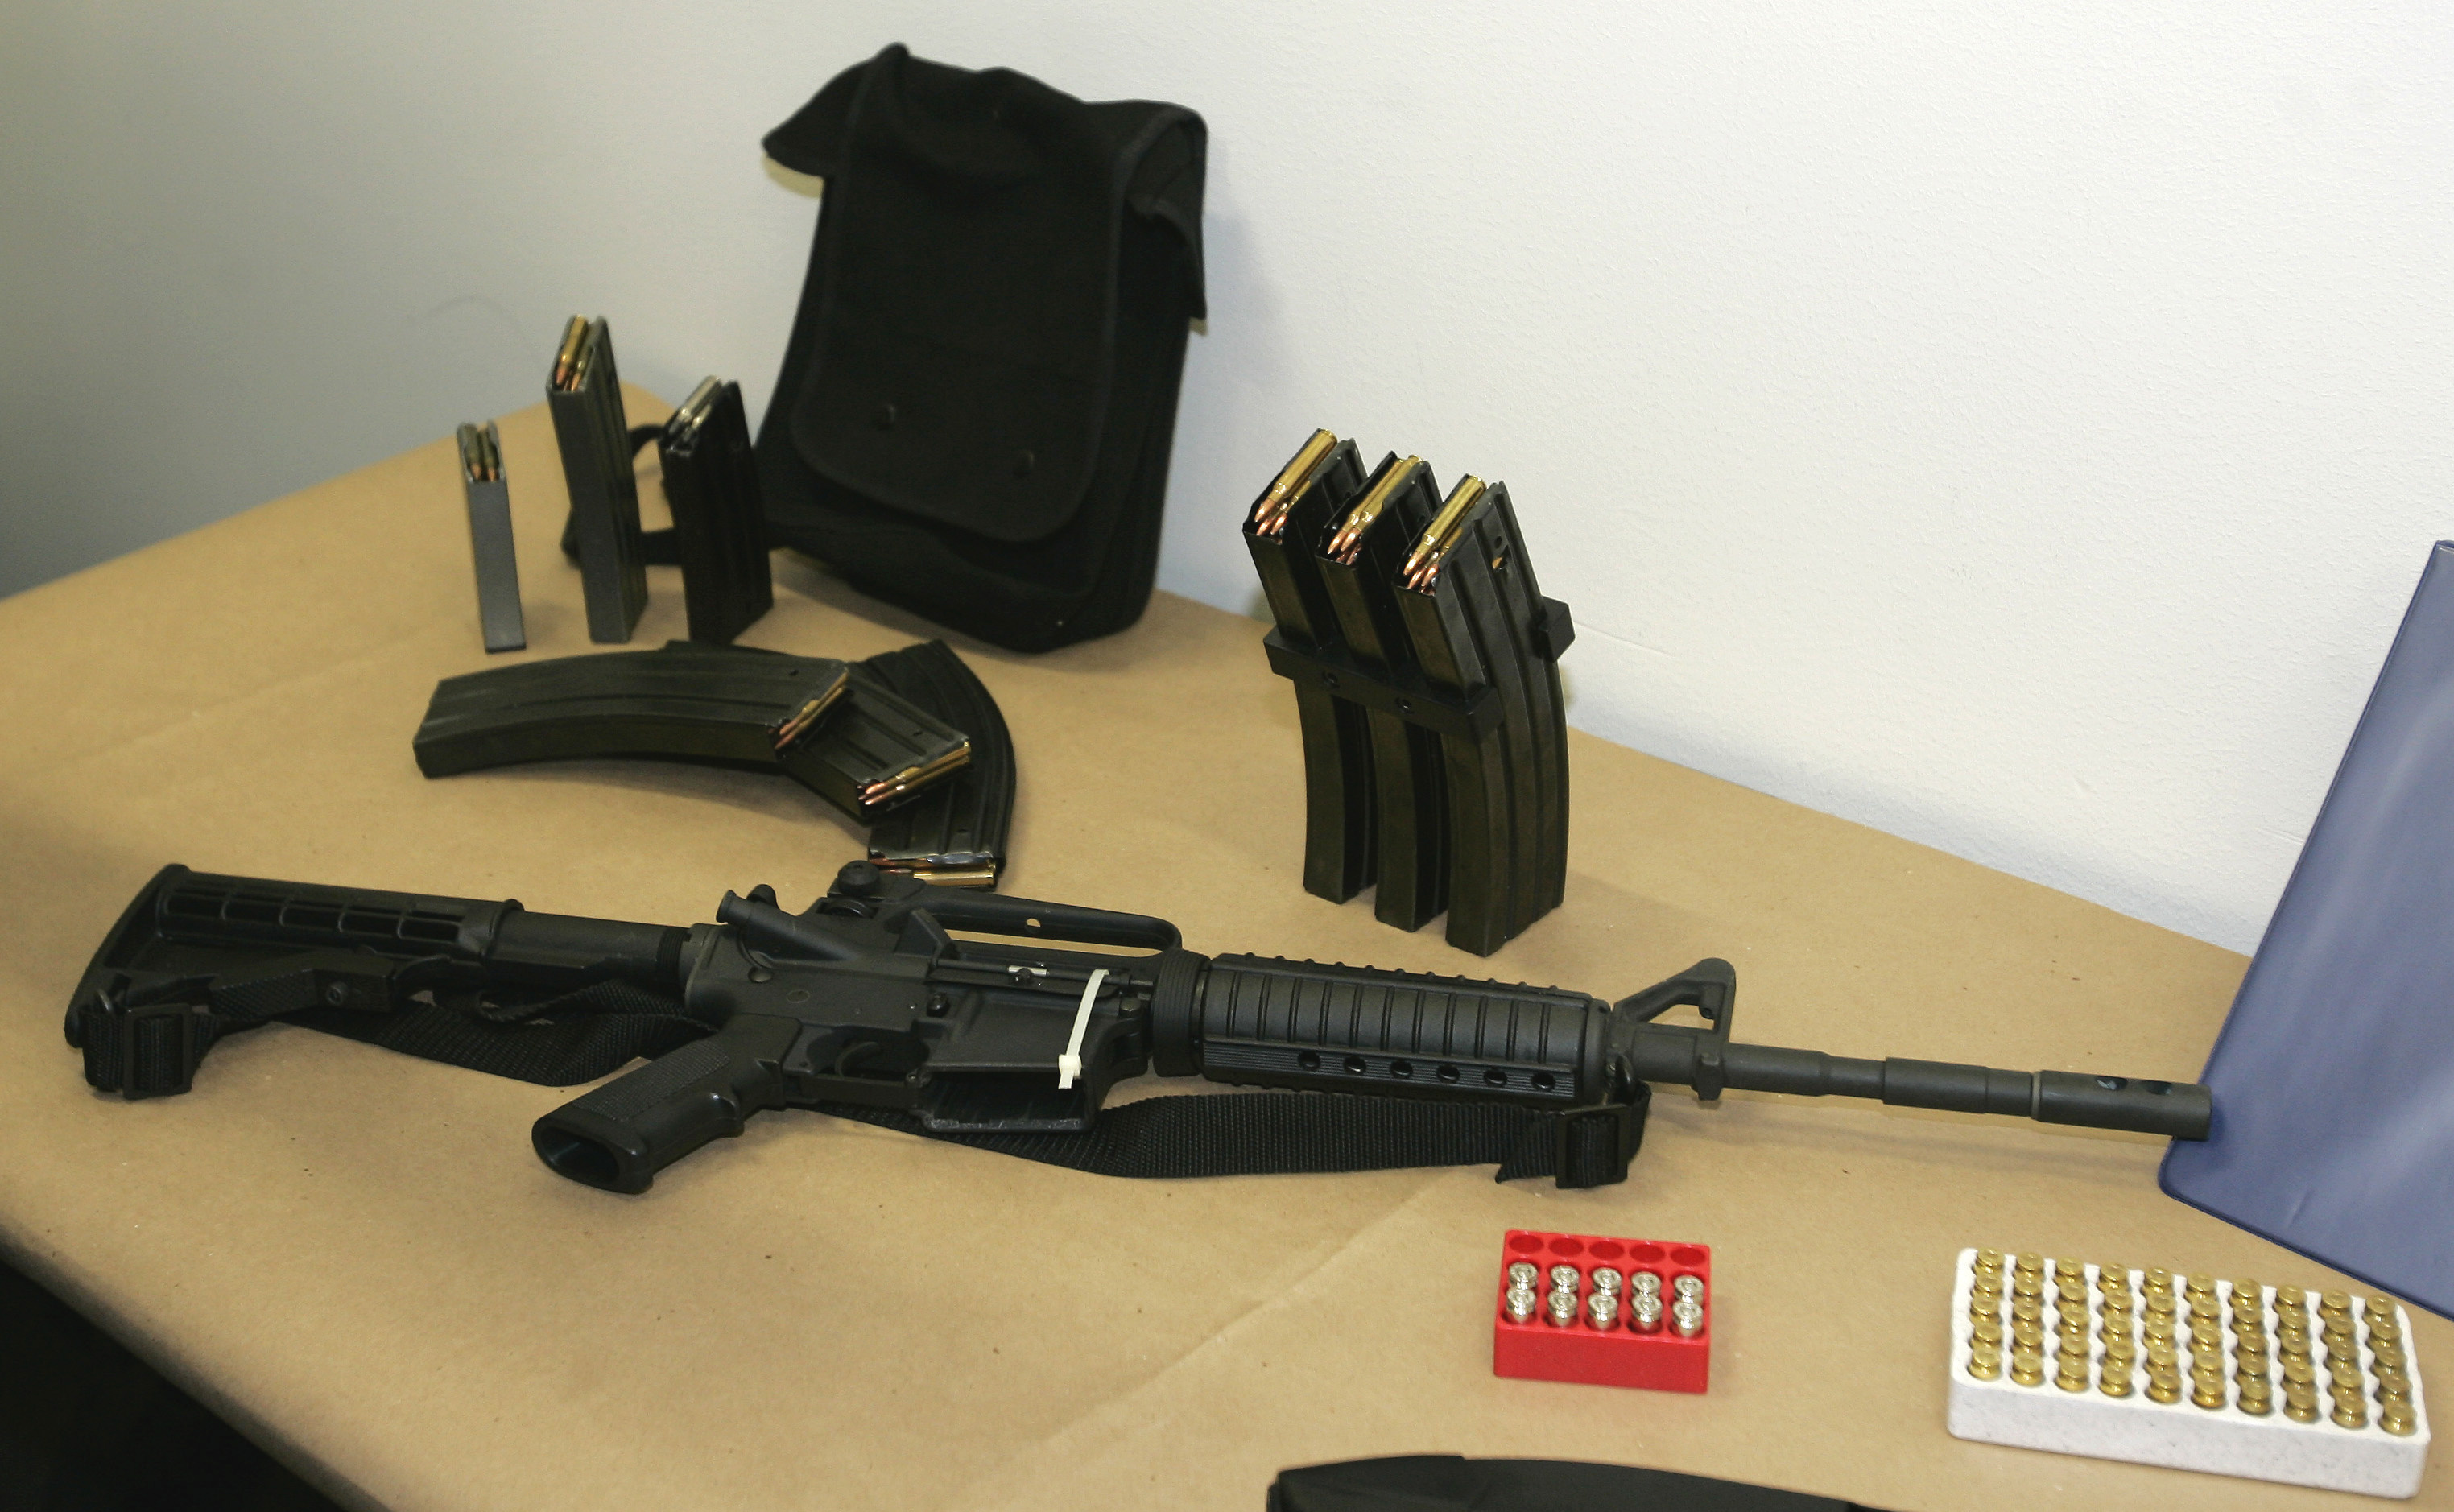 Mass murderers' other commonality: AR-15 | The Spokesman-Review